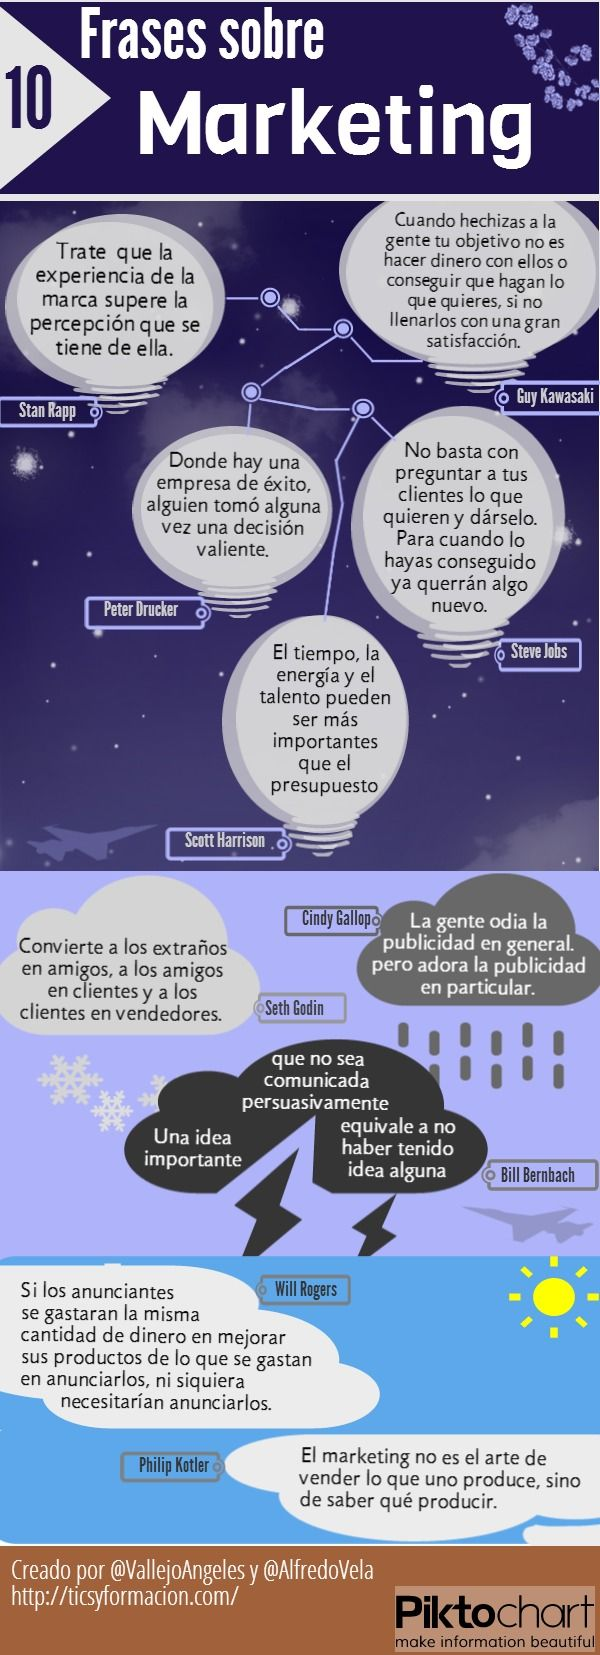 Compartimos estas 10 frases de marketing #Infografía en español